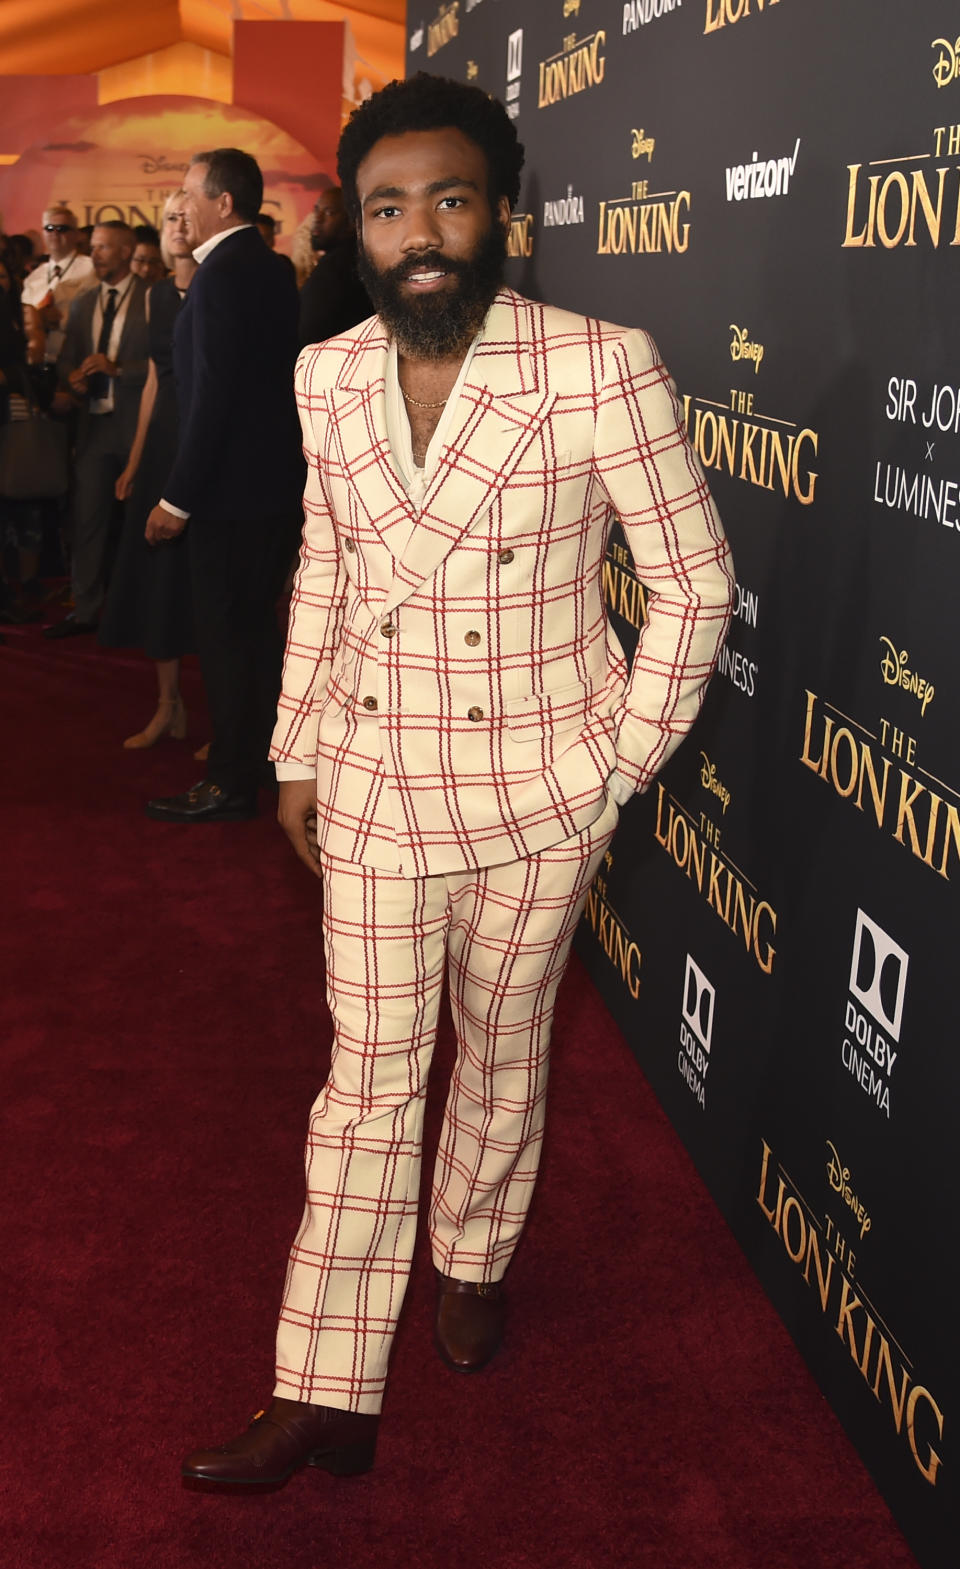 """Donald Glover, a cast member in """"The Lion King,"""" arrives at the premiere of the film, Tuesday, July 9, 2019, in Los Angeles. (Photo by Chris Pizzello/Invision/AP)"""